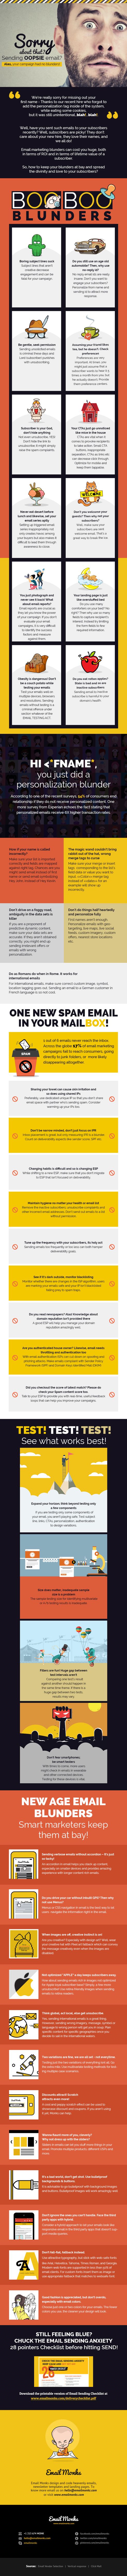 Email-Blunders---Infographic